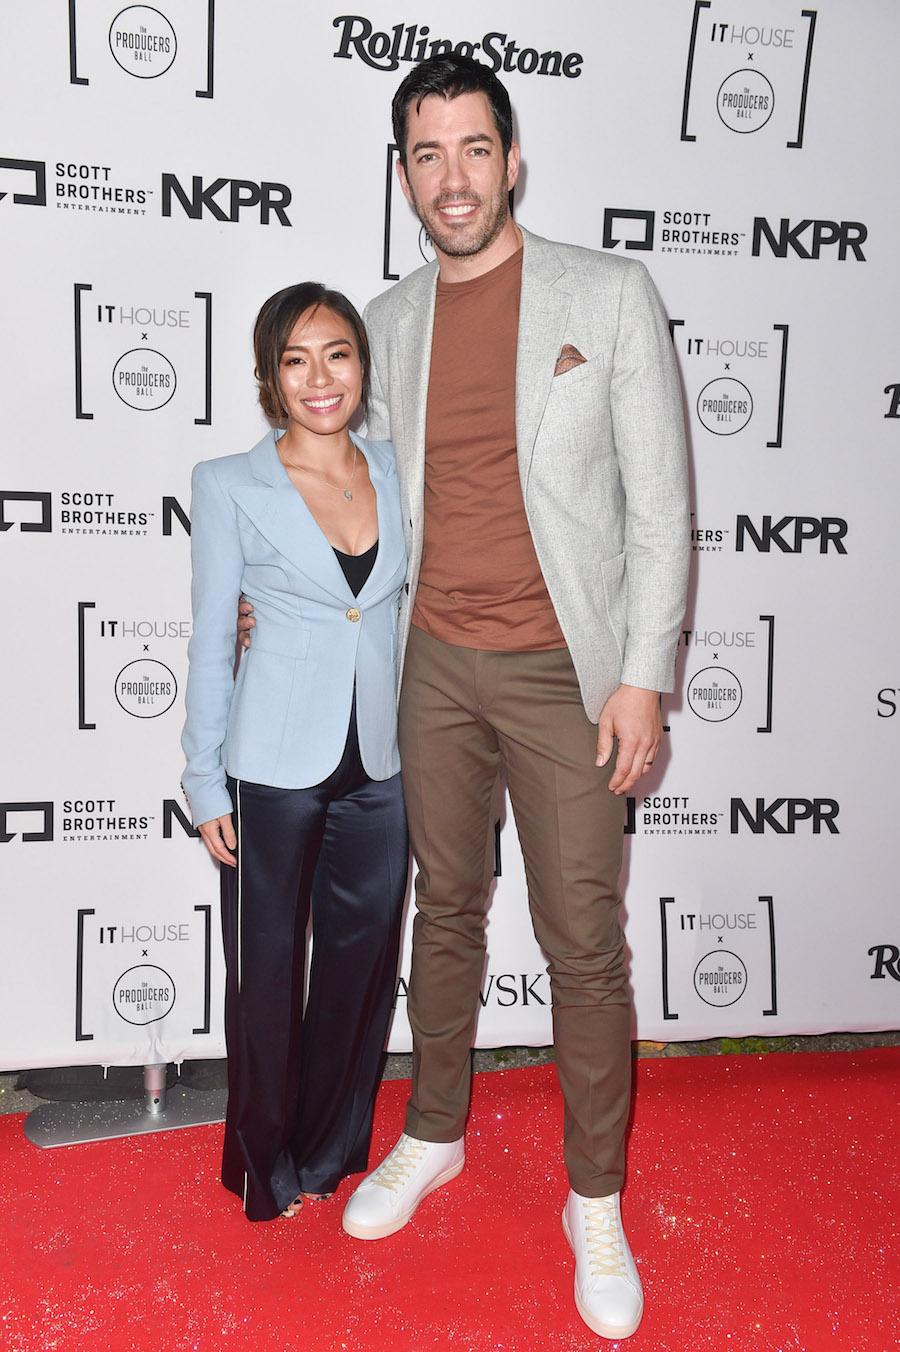 Drew Scott & his newly wed wife, Linda Phan at the IT House x Producers Ball (Photo: Courtesy of NKPR)